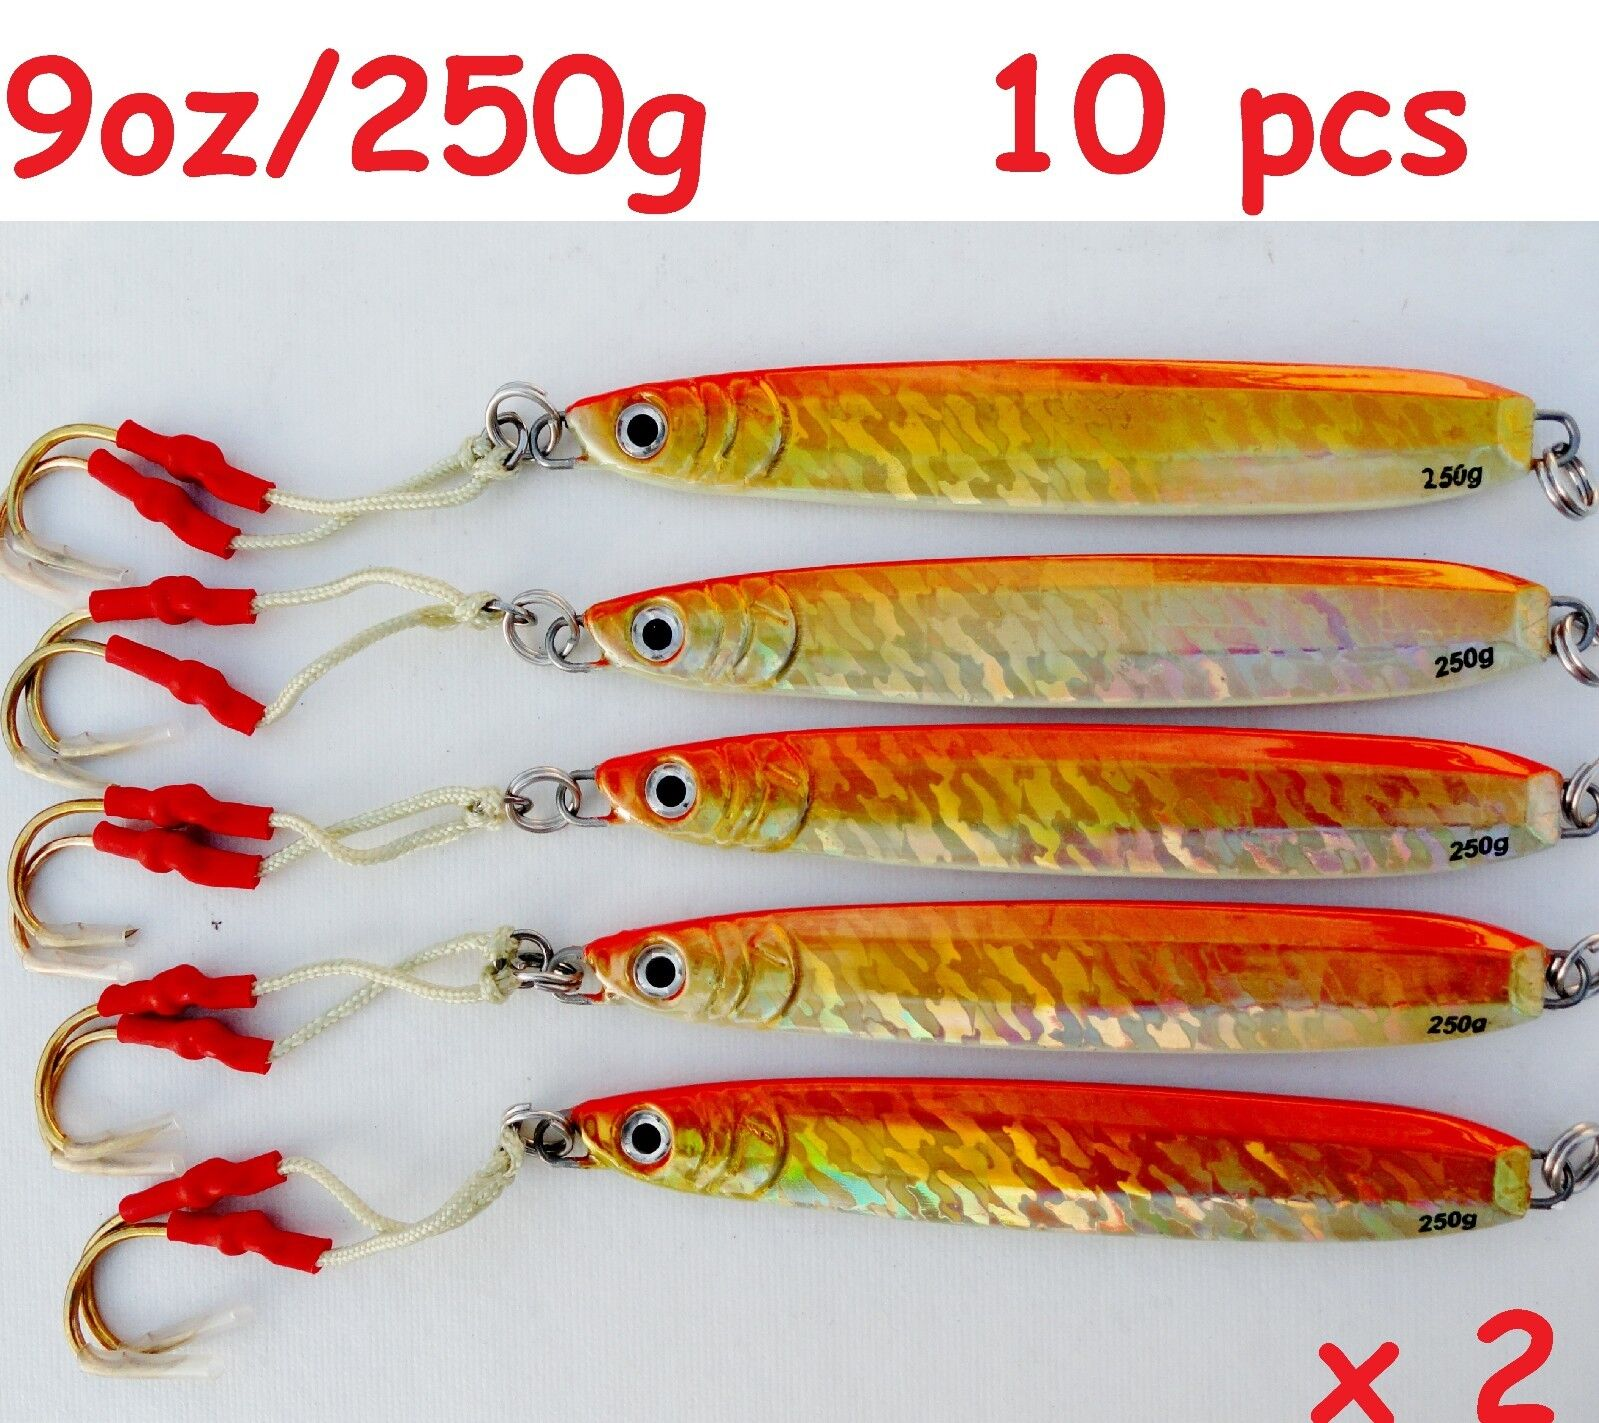 Qty10 Knife Jigs 9oz 250g orange greenical Butterfly Saltwater Fishing Lures